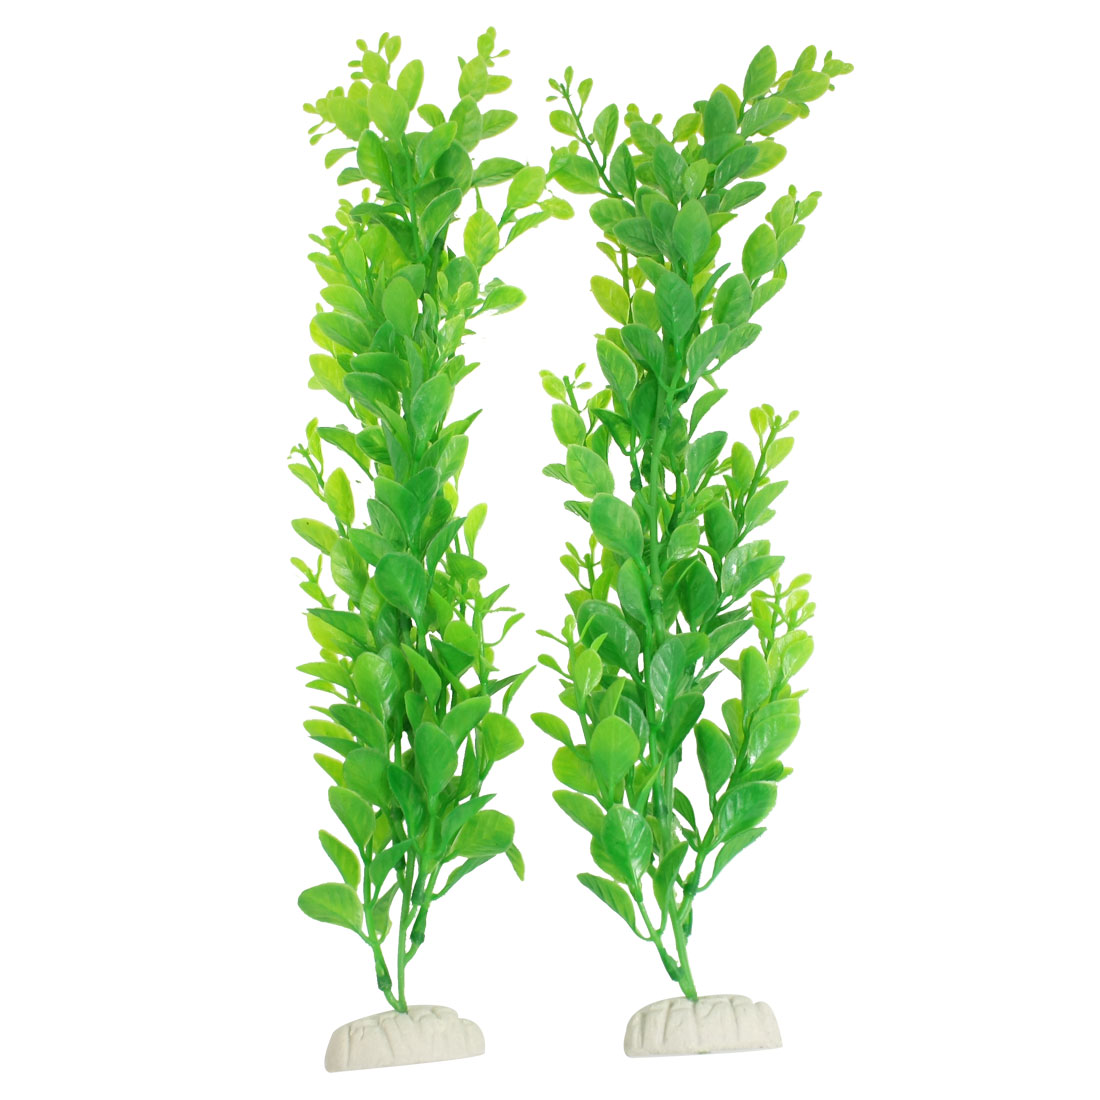 "2 Pcs Aquarium Fish Tank Decor Green Plastic Plant Grass 14.5"" High"